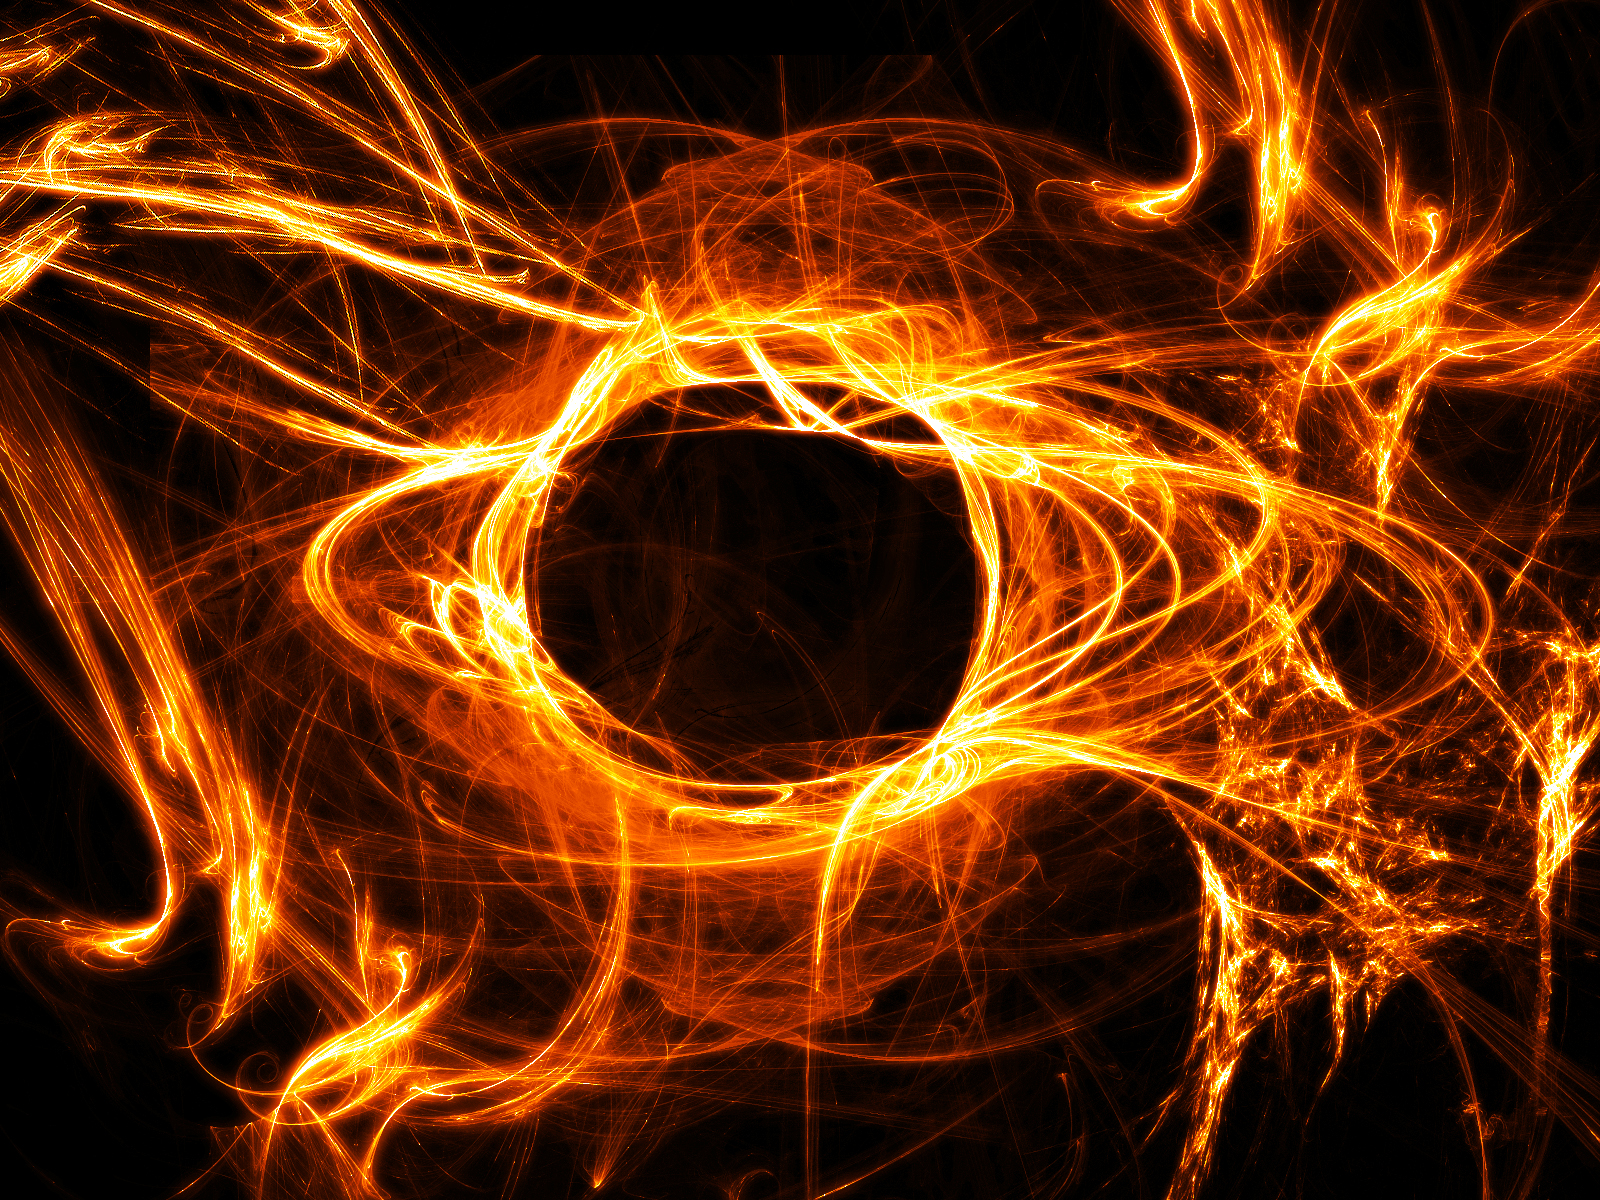 ring of fire - Fire Rings